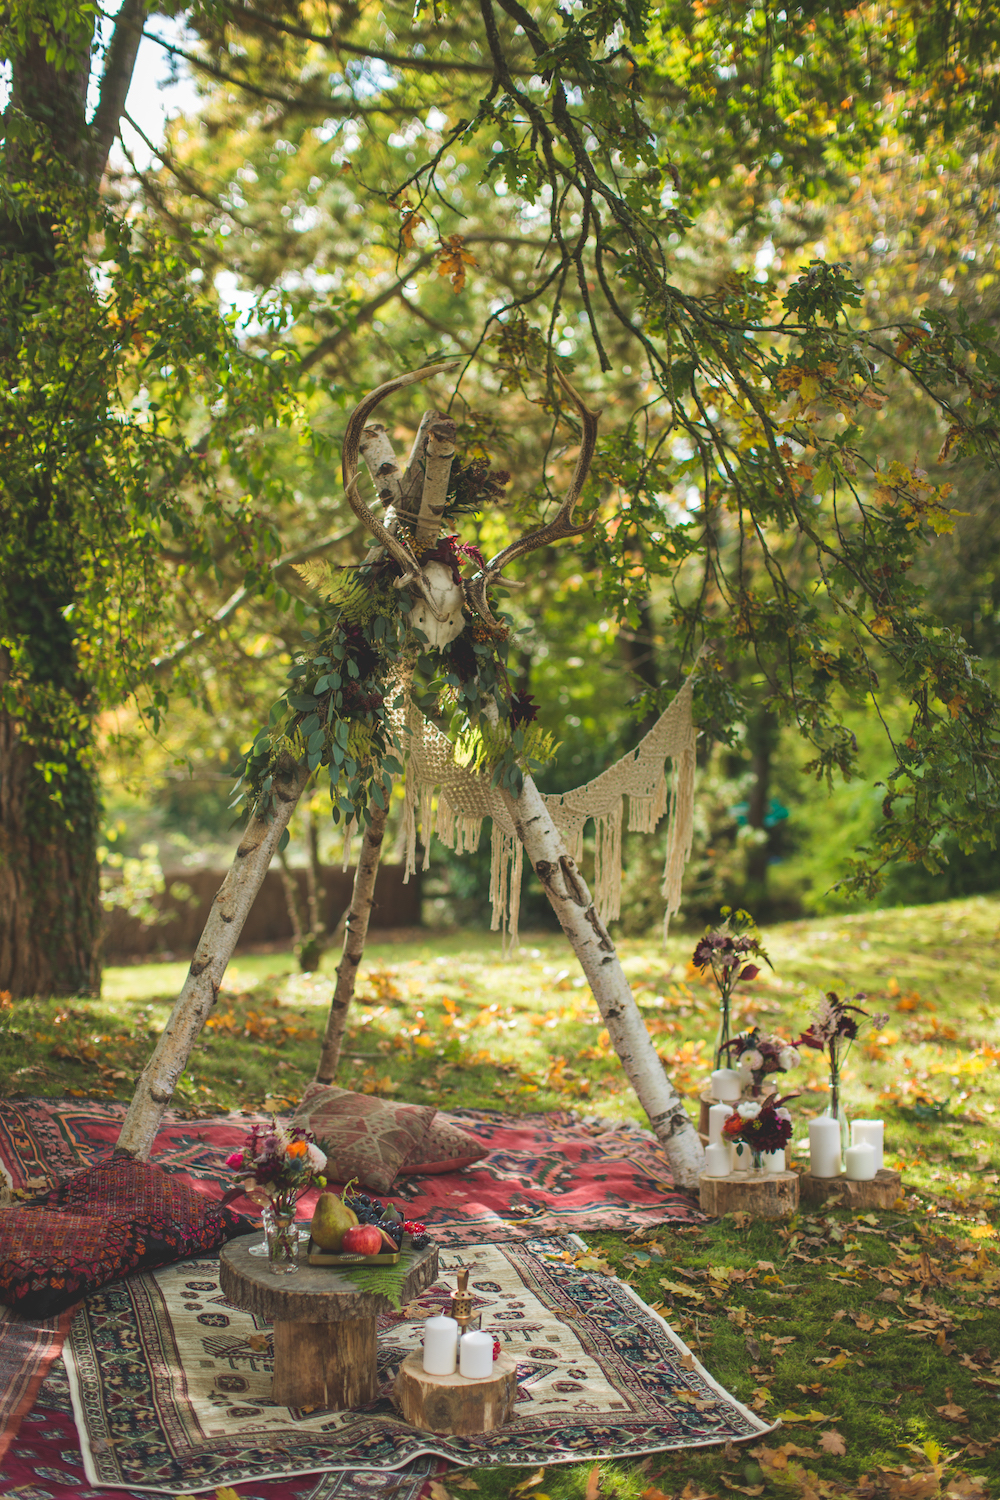 shooting-inspiration-kinfolk-boheme-couleurs-automne-decoration-my-day-and-co-tapis-exterieur-bougie-rondin-bois-tipi-guirlande-macrame-jardin-camille-marciano-physalis.jpg